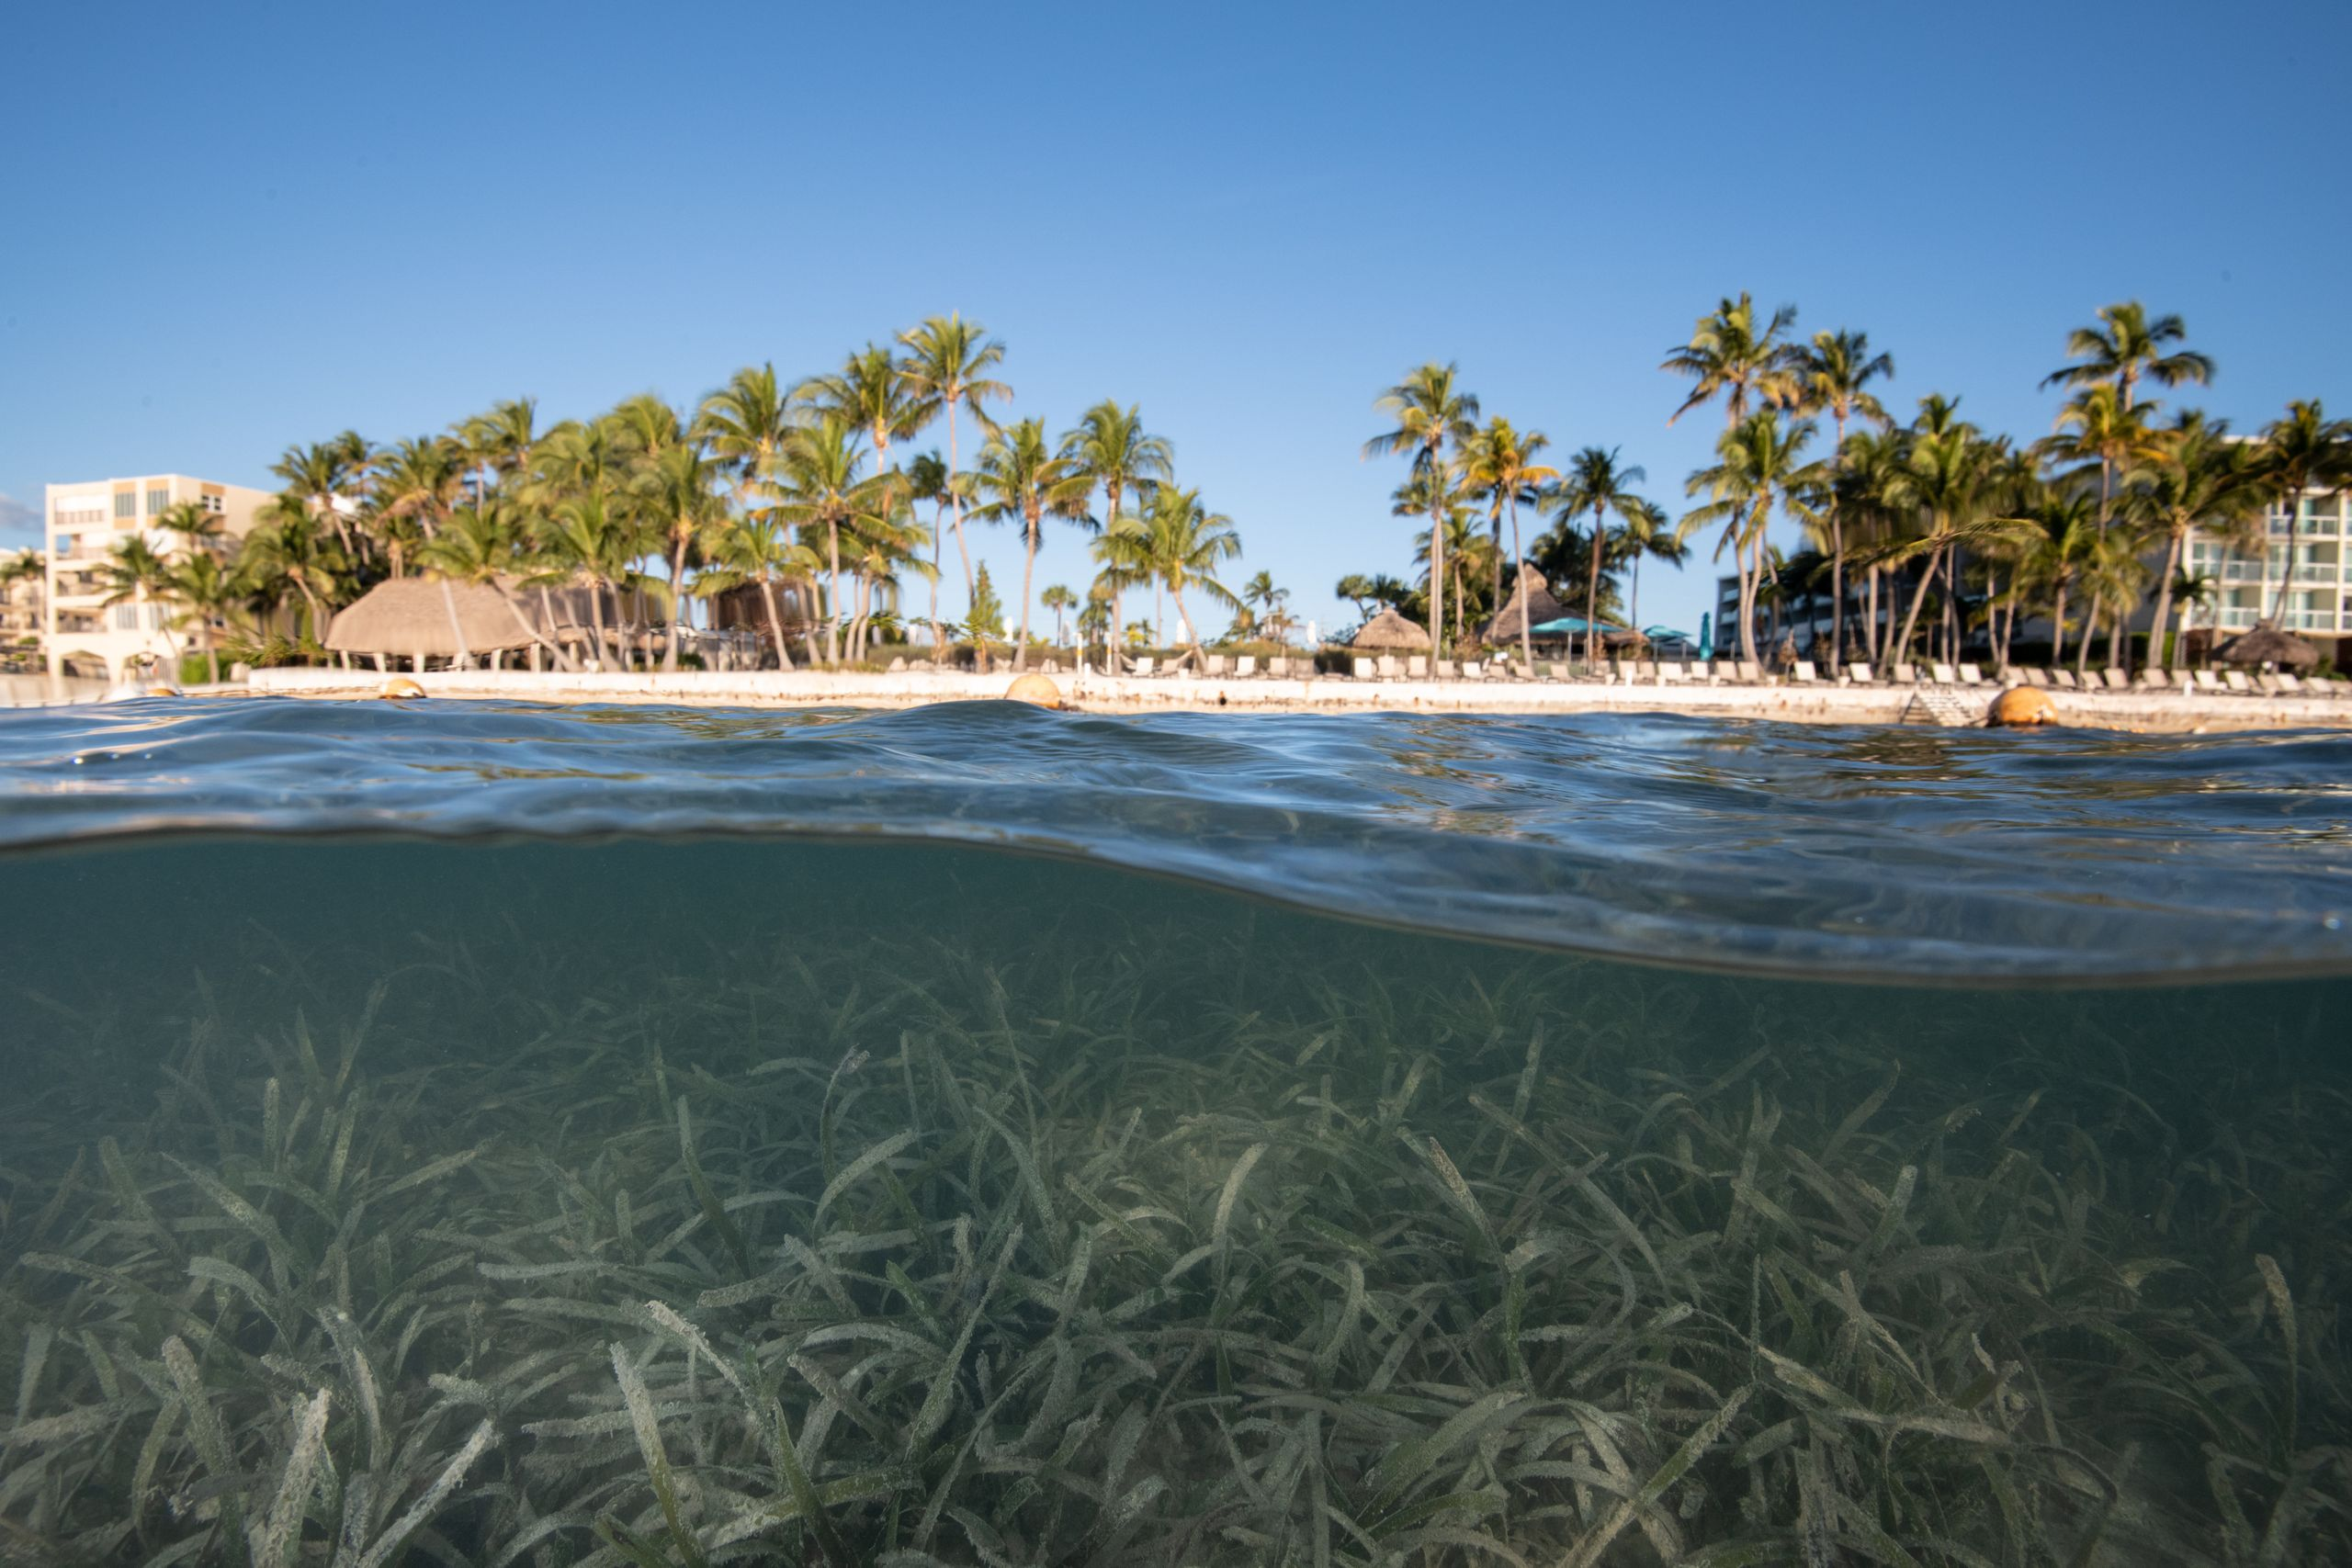 Seagrass near the Sands of Islamorada Ocean Front Hotel, Islamorada, Florida. Coastal development, and the pollution it cause